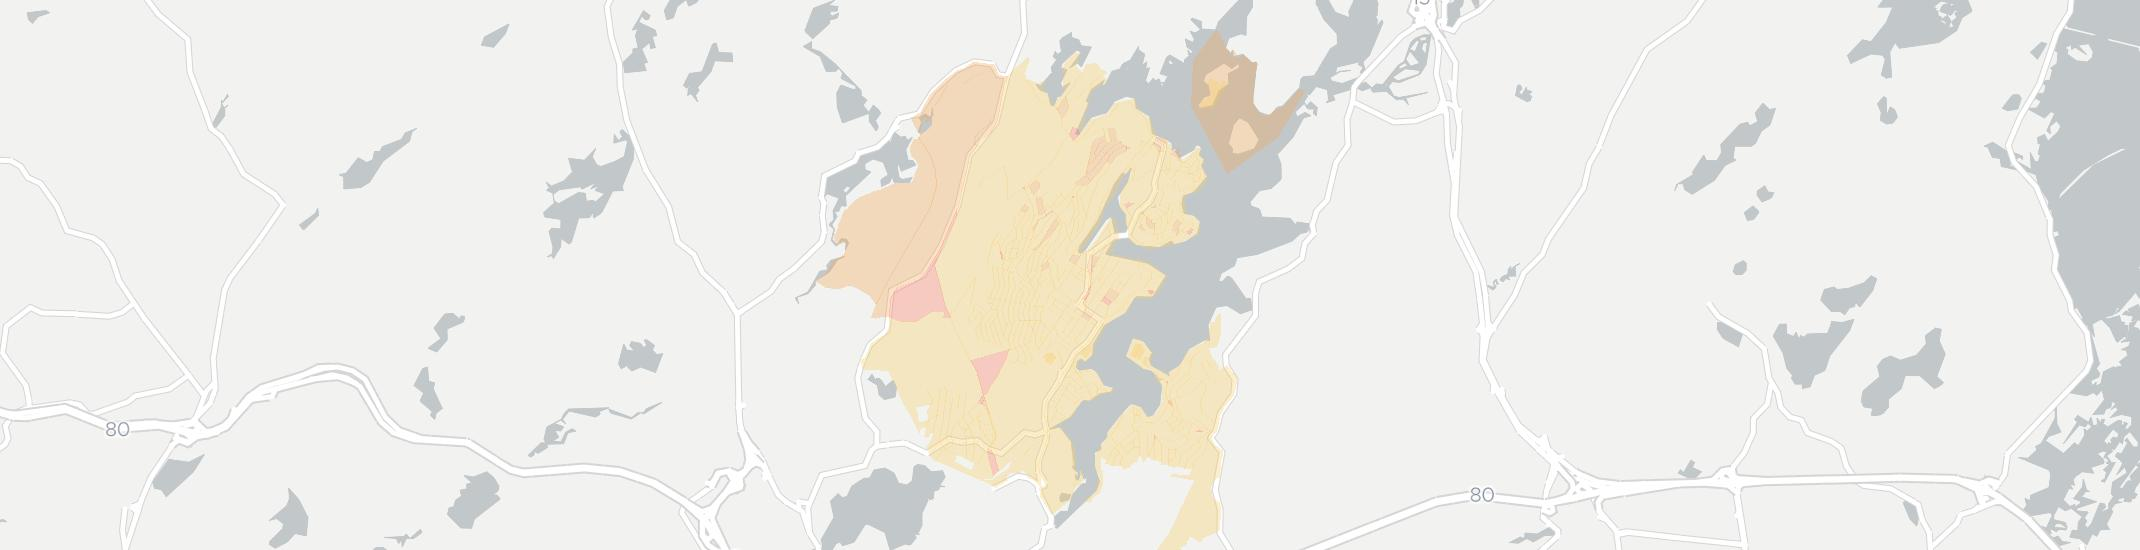 Hopatcong Internet Competition Map. Click for interactive map.